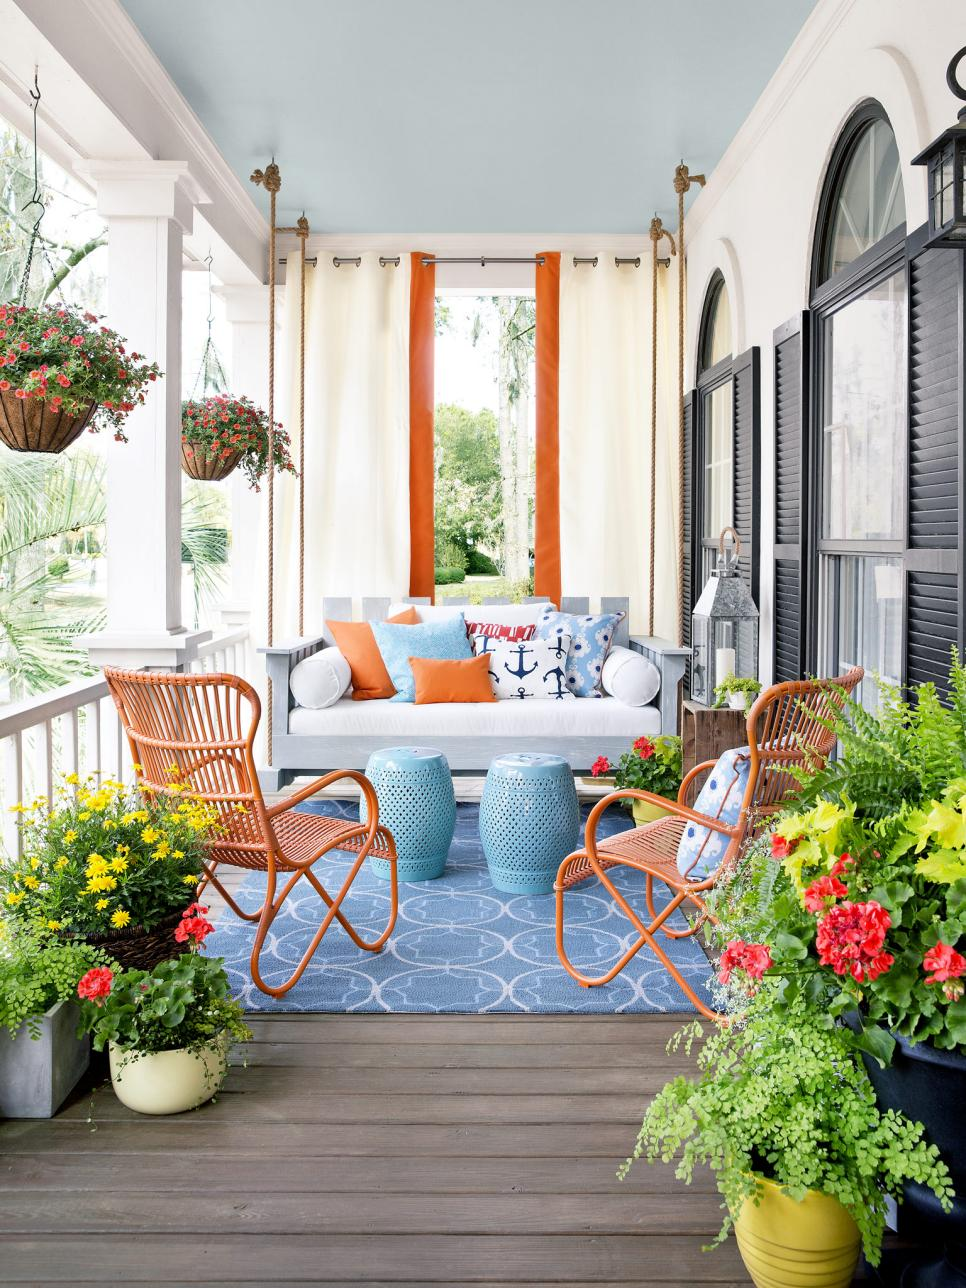 hgtv magazine 2014 furniture. Porch2 Hgtv Magazine 2014 Furniture